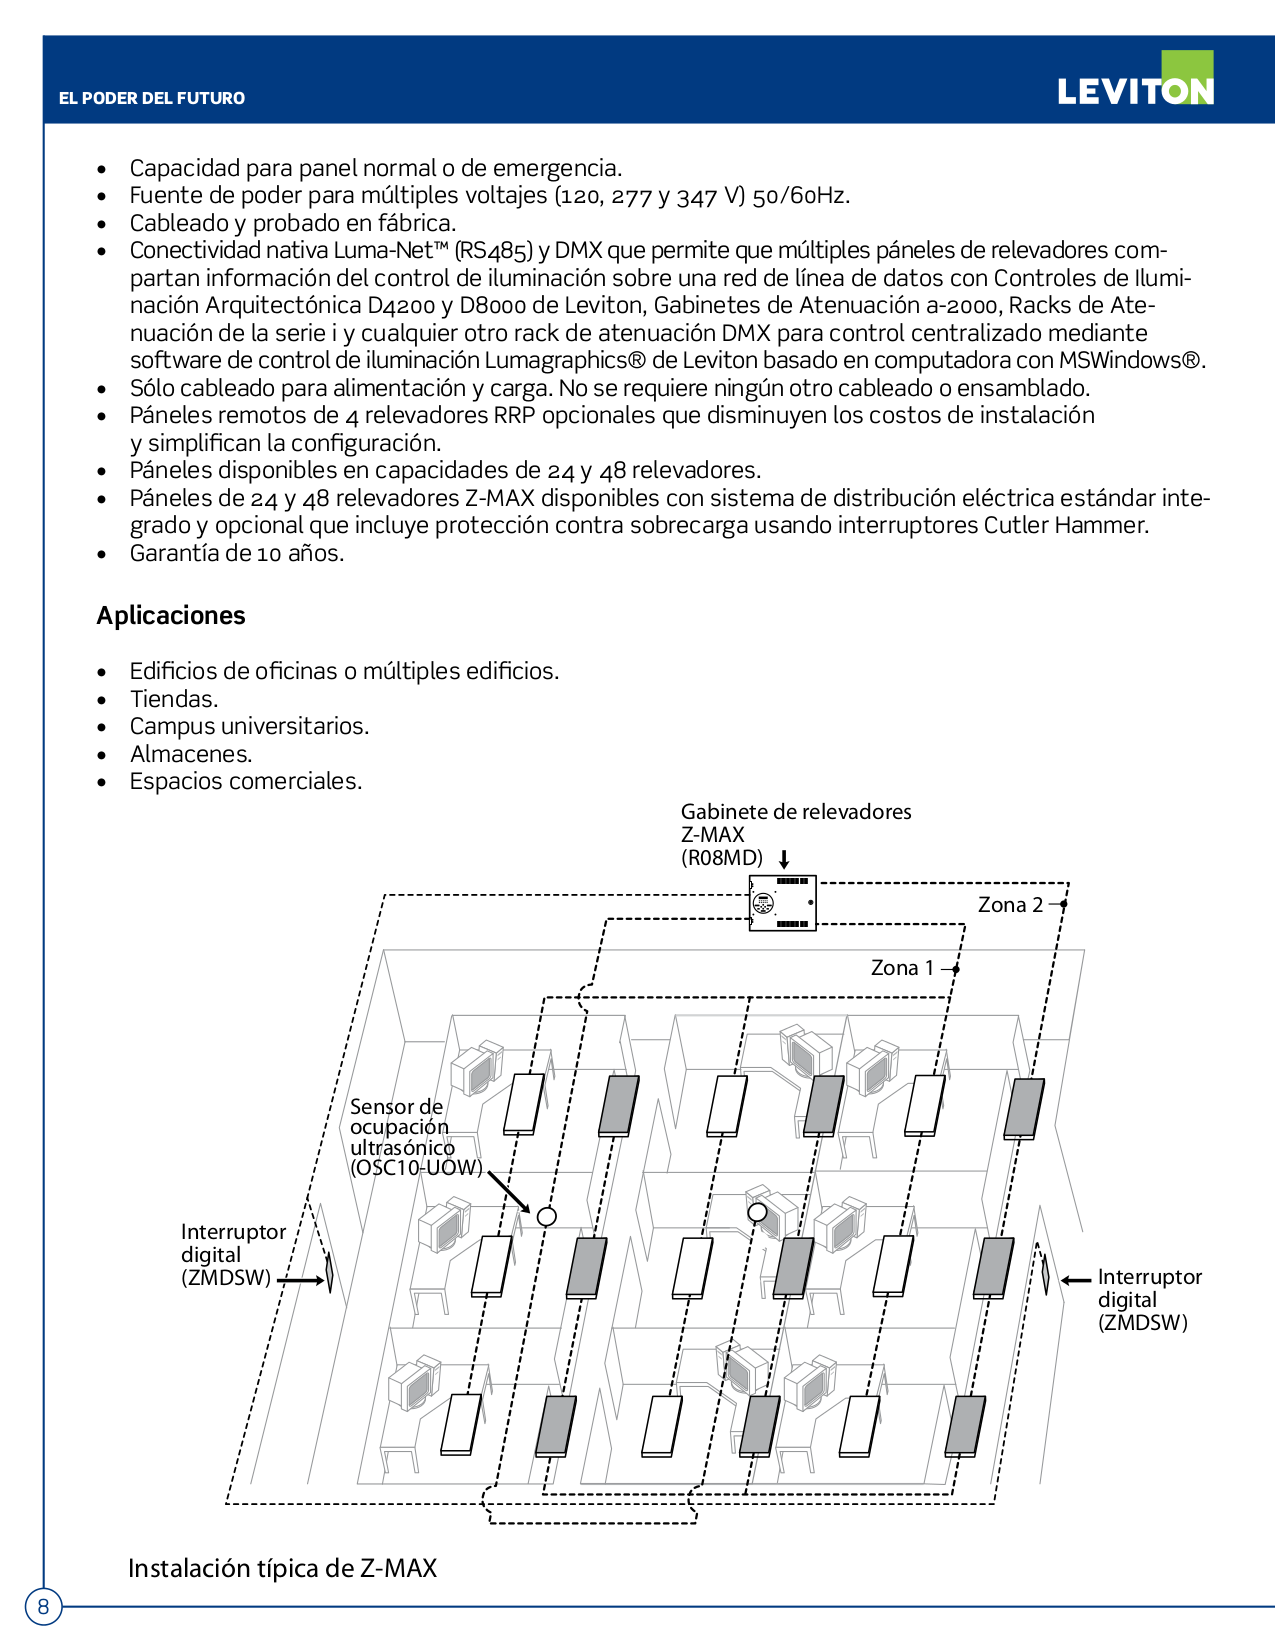 Wire Diagram Leviton Ez Max Pdf Manual For Other Miniz Mzd20 102 Harvesting Controller Page Preview